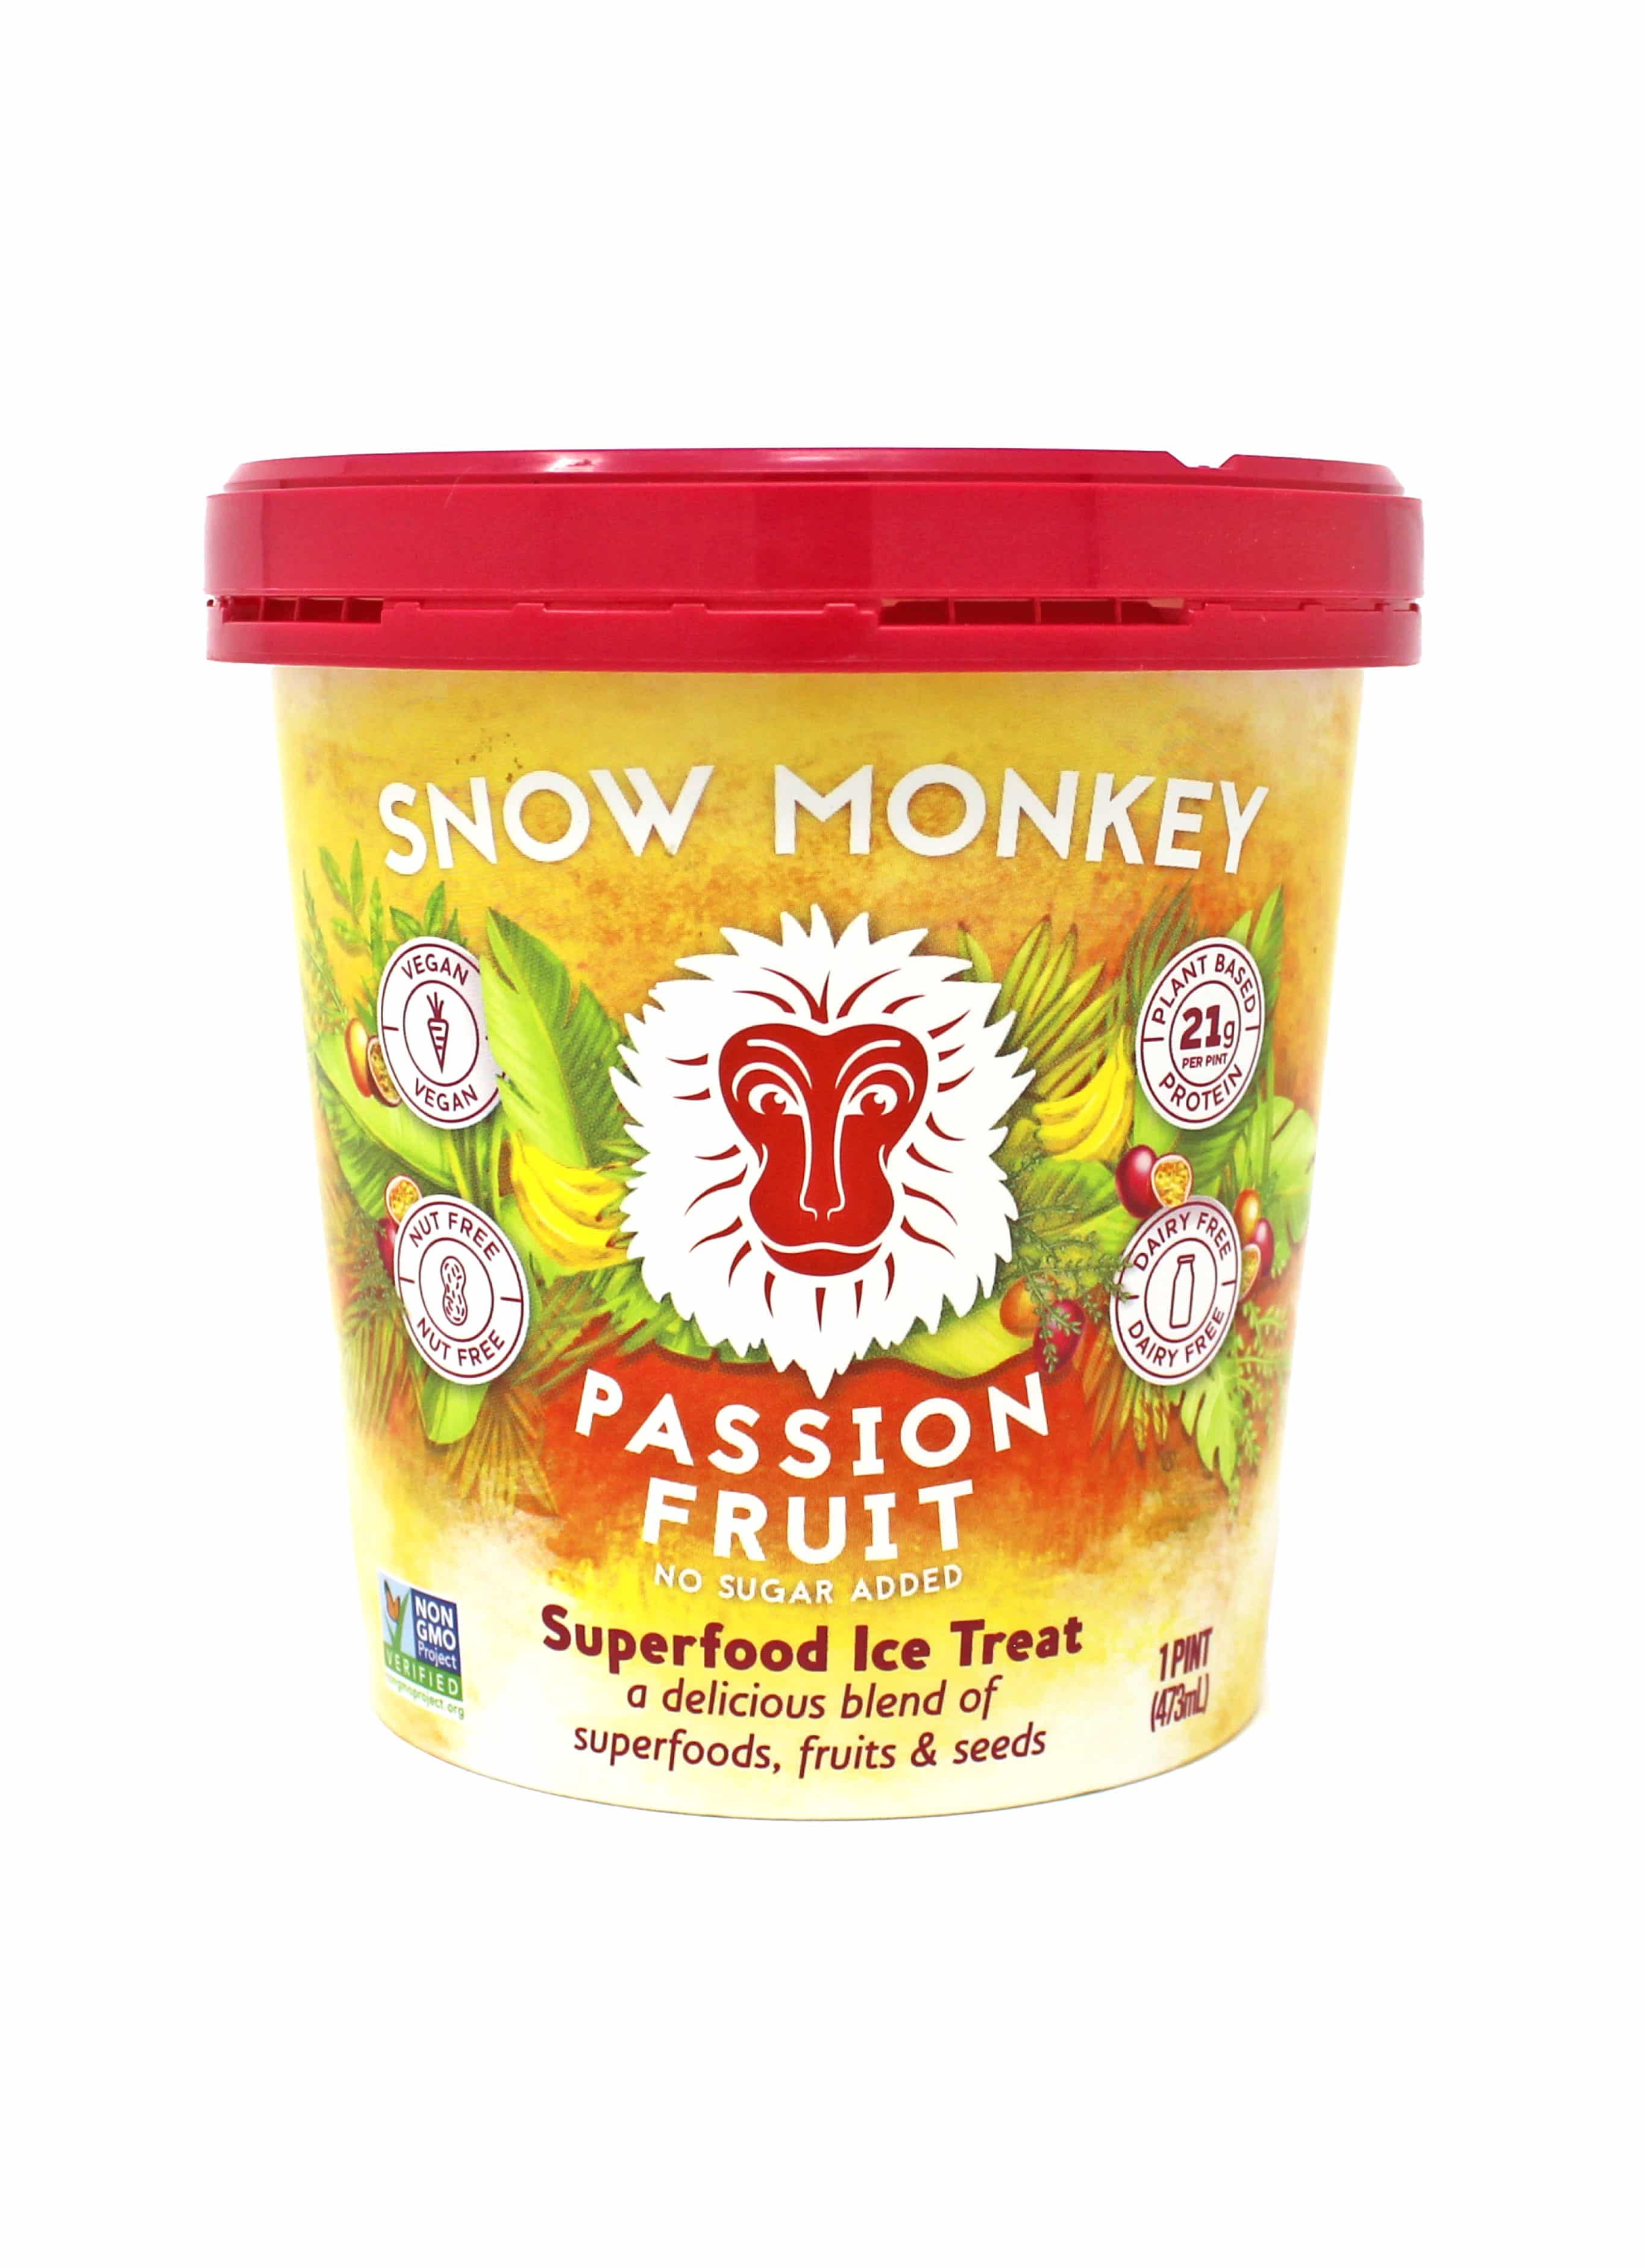 Snow Monkey Releases Three New Superfood Ice Treat Flavors